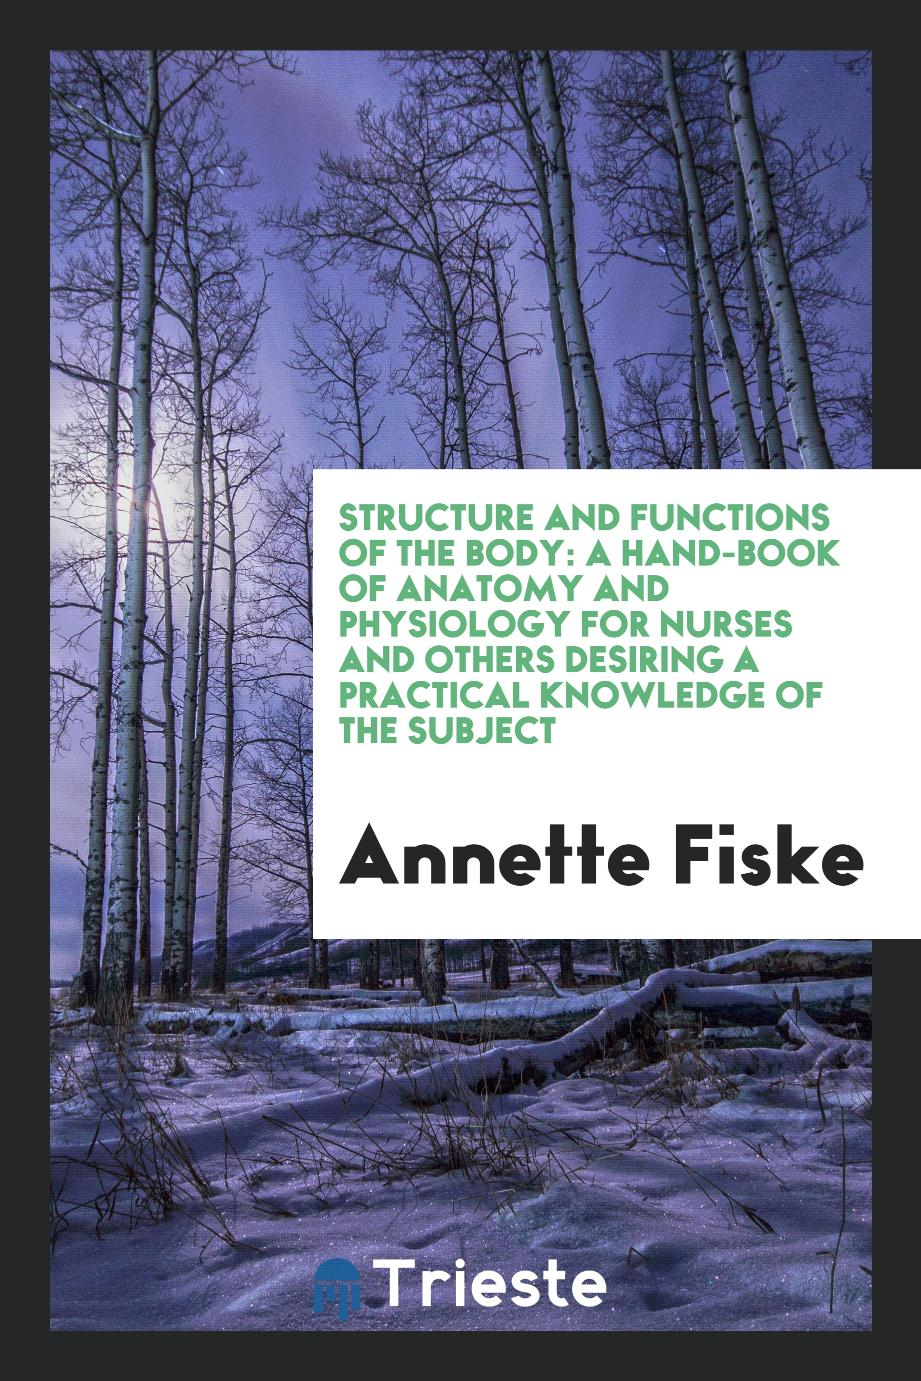 Structure and Functions of the Body: A Hand-Book of Anatomy and Physiology for Nurses and Others Desiring a Practical Knowledge of the Subject